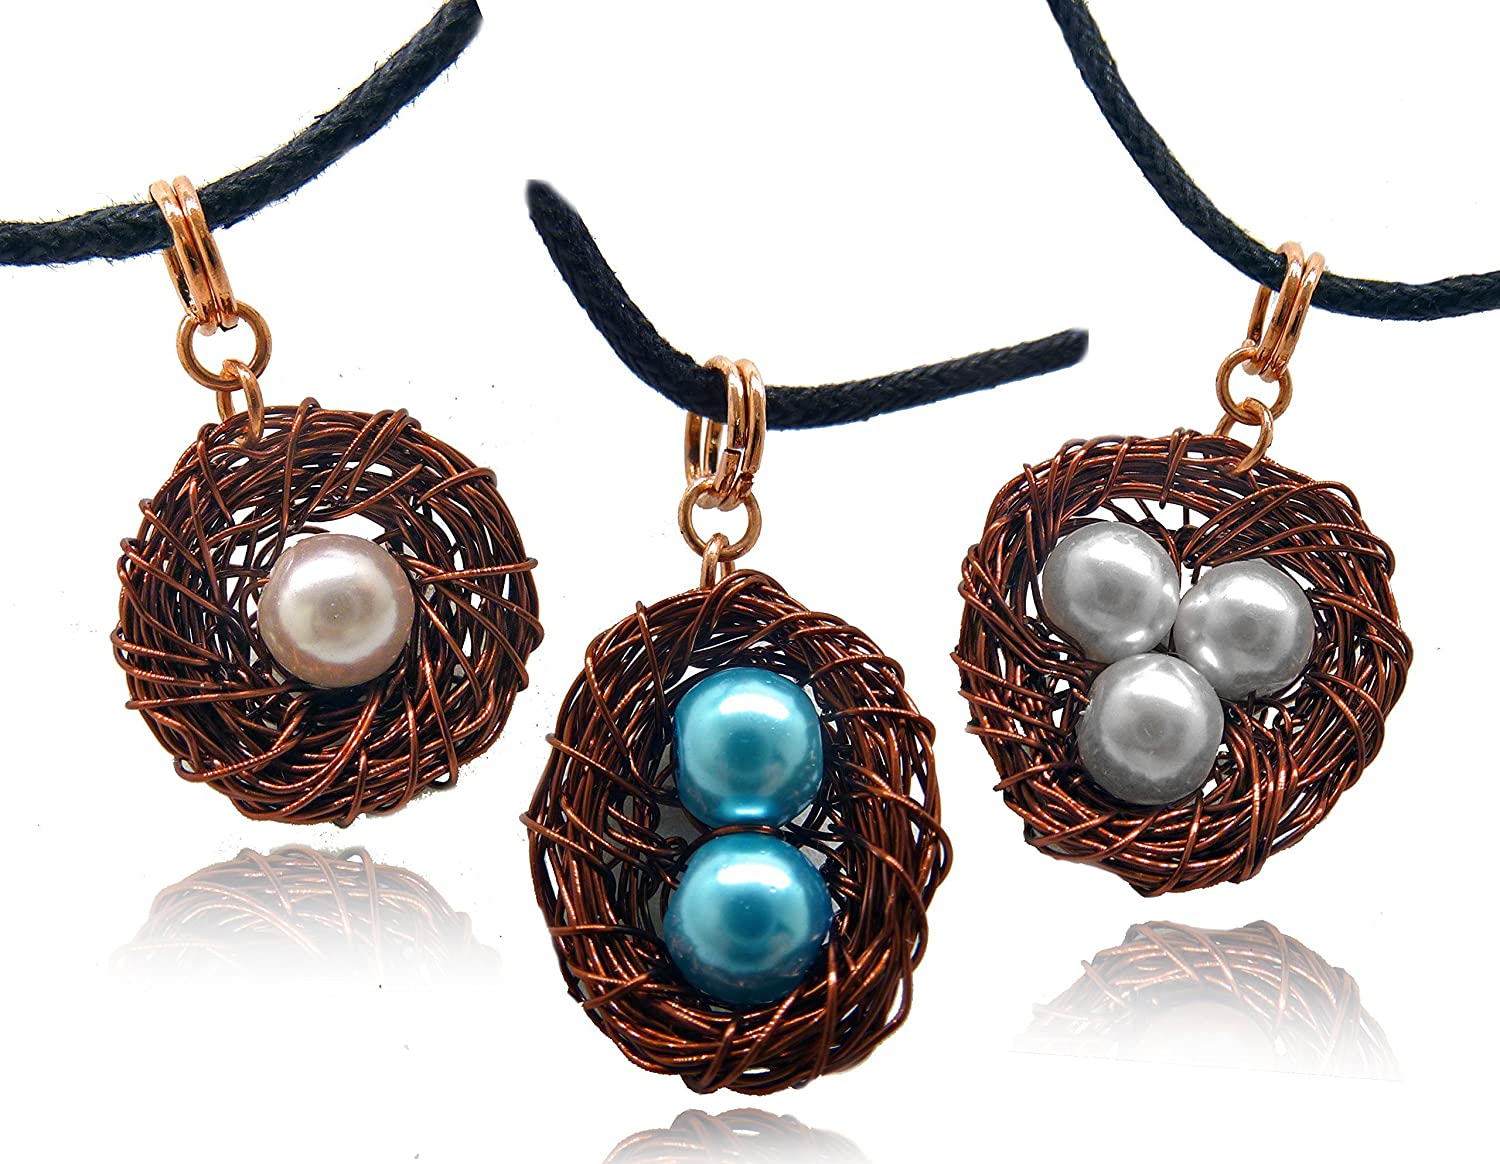 Custom Made Unique Handcrafted Gift Bird Nest Pin Wire Wrapped Silver with Pearl Eggs